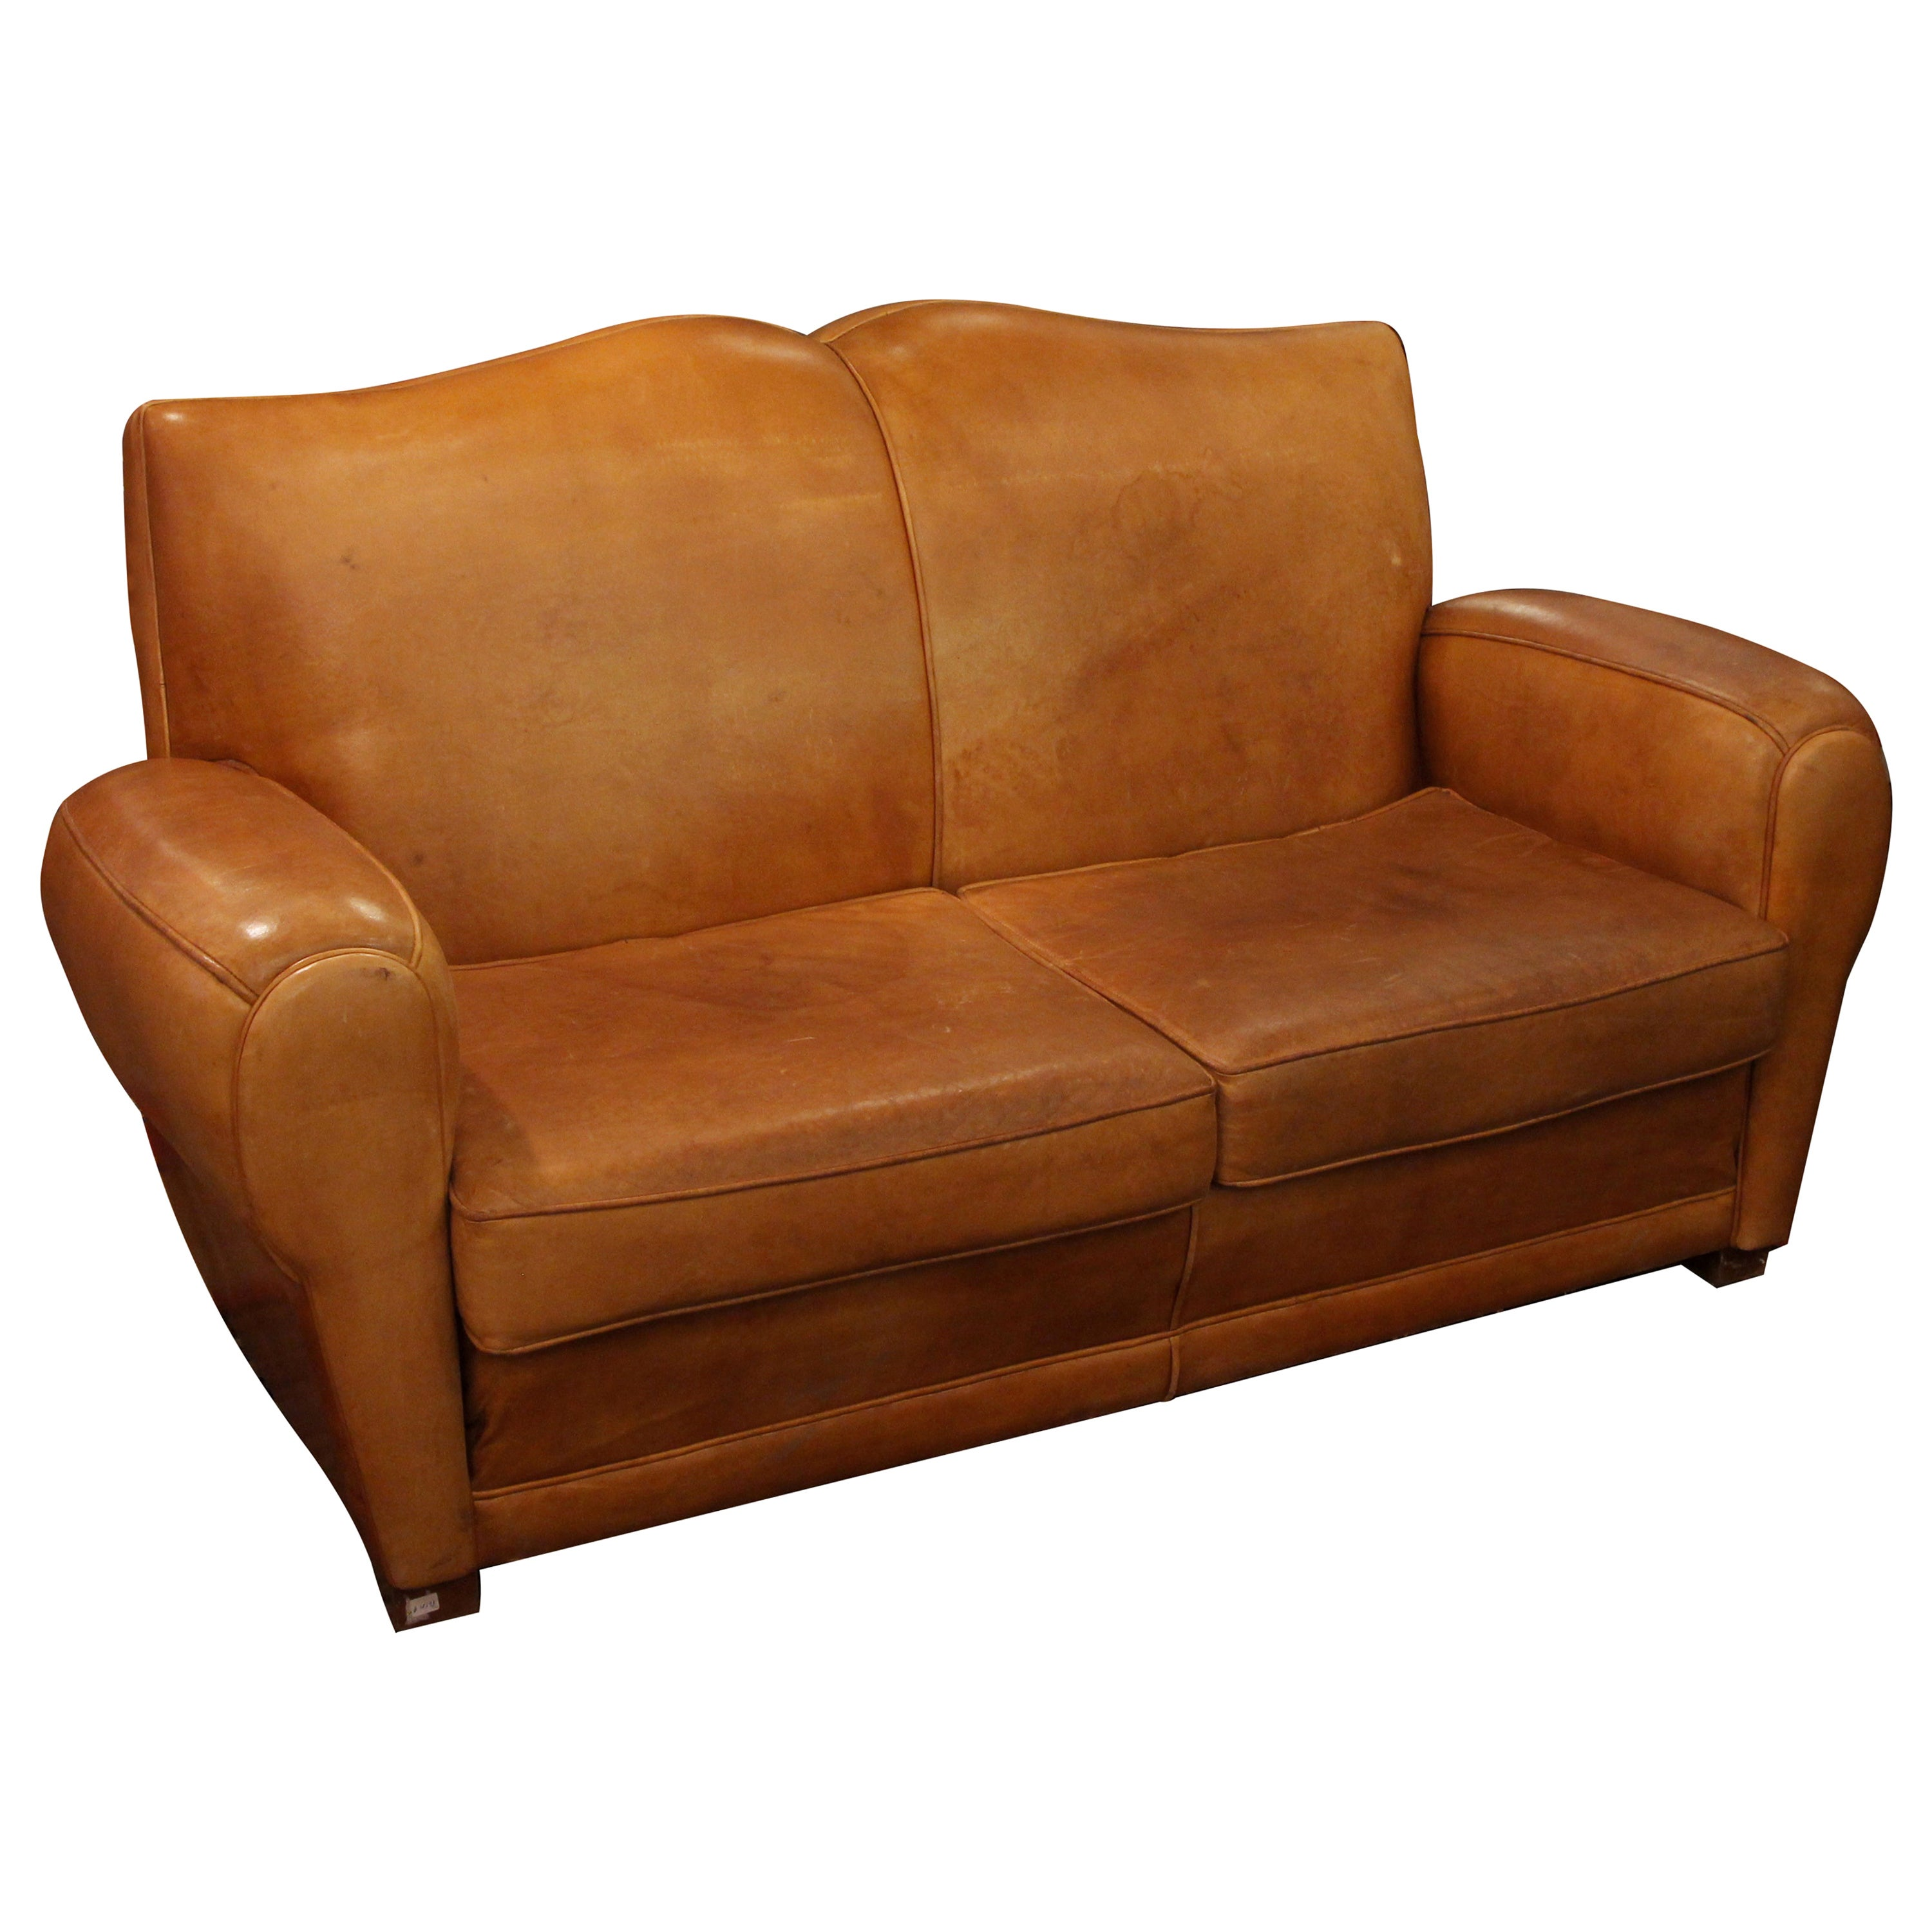 1980s Comfy Mustache Style Tan Leather Club Sofa from France For ...